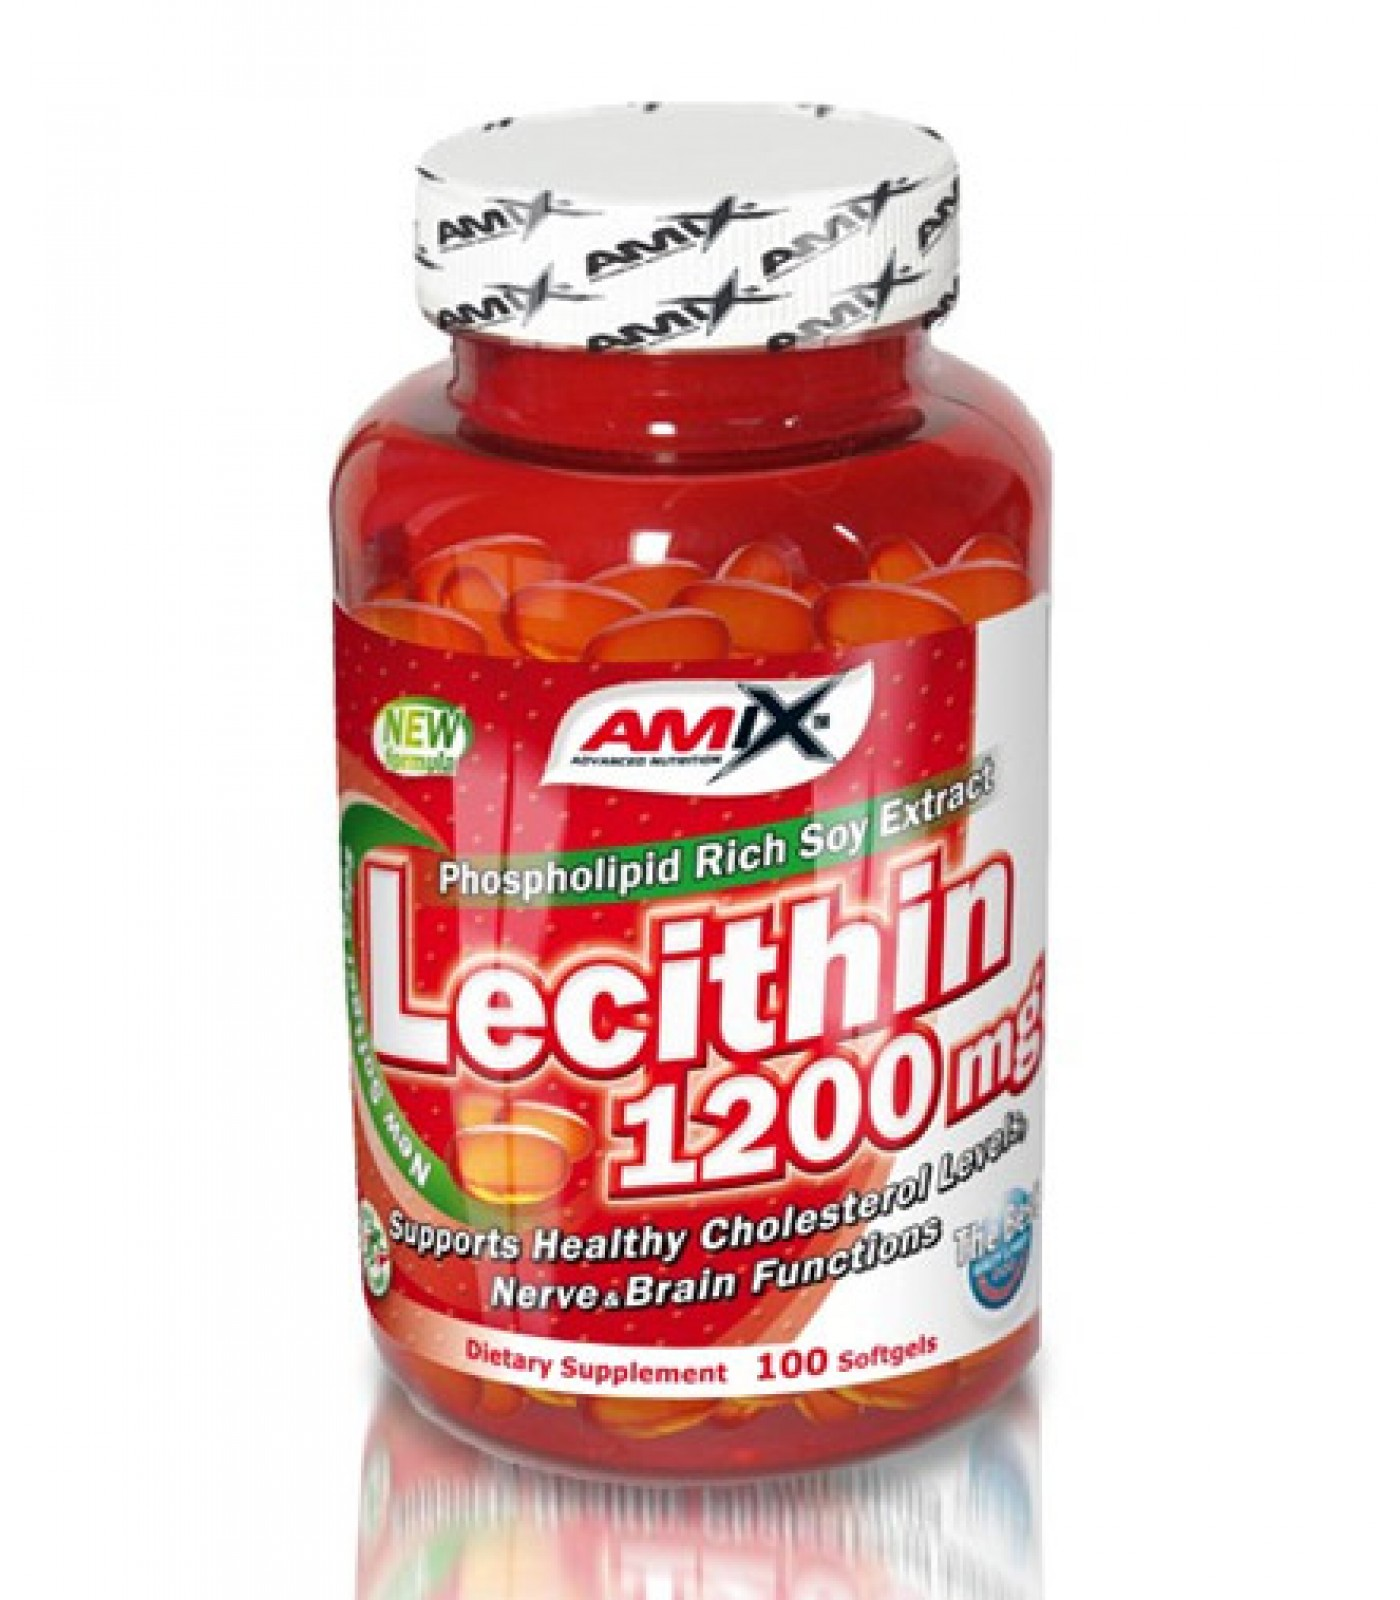 Amix - Lecithin / 100caps x 1200mg.